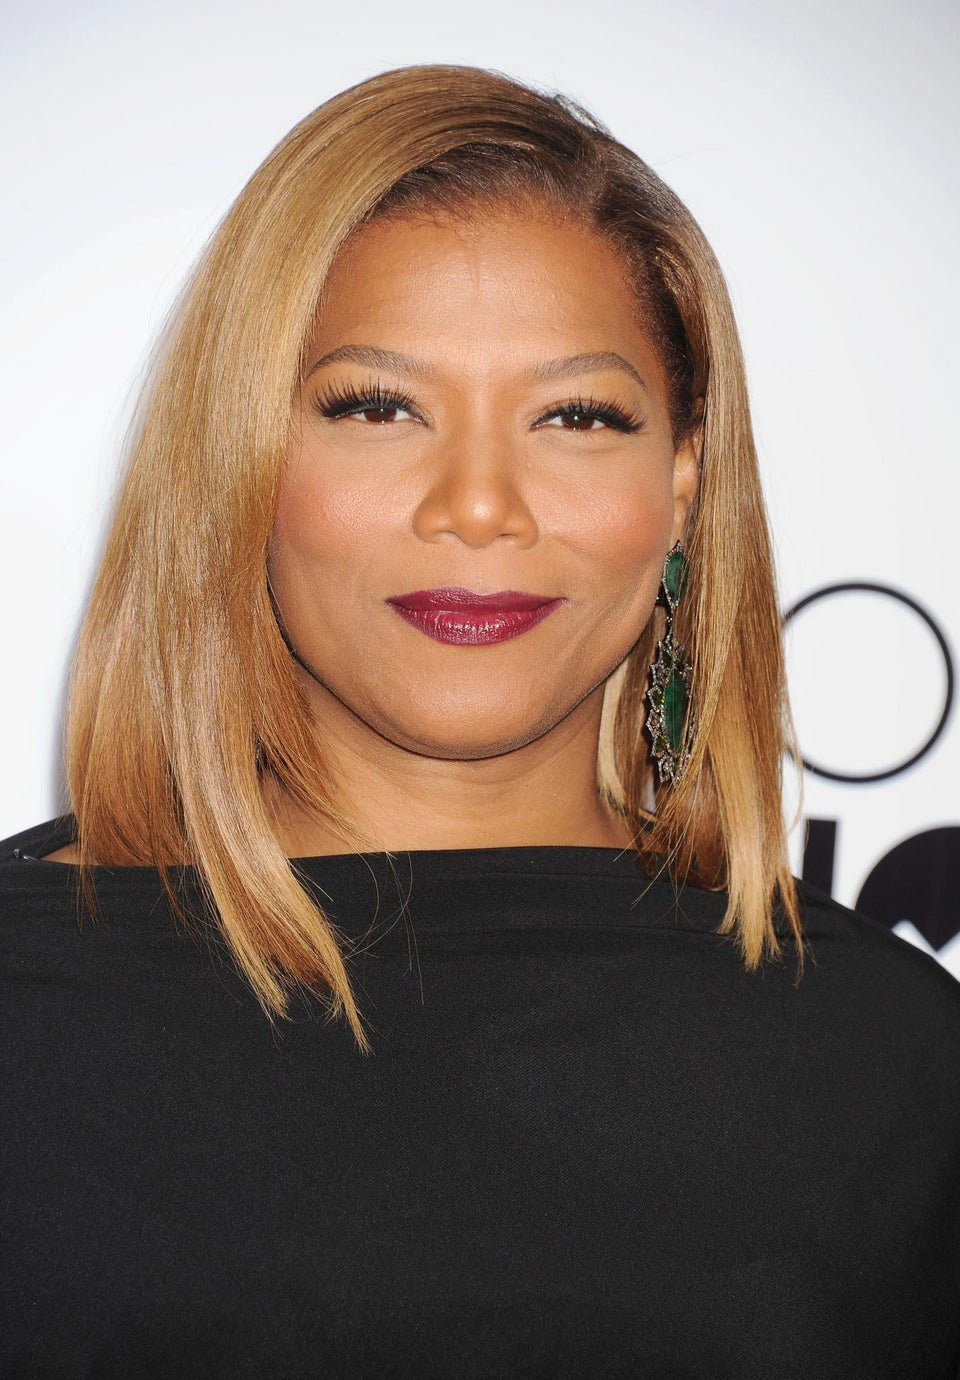 Queen Latifah Opens Up About Her Mother's Battle with Scleroderma